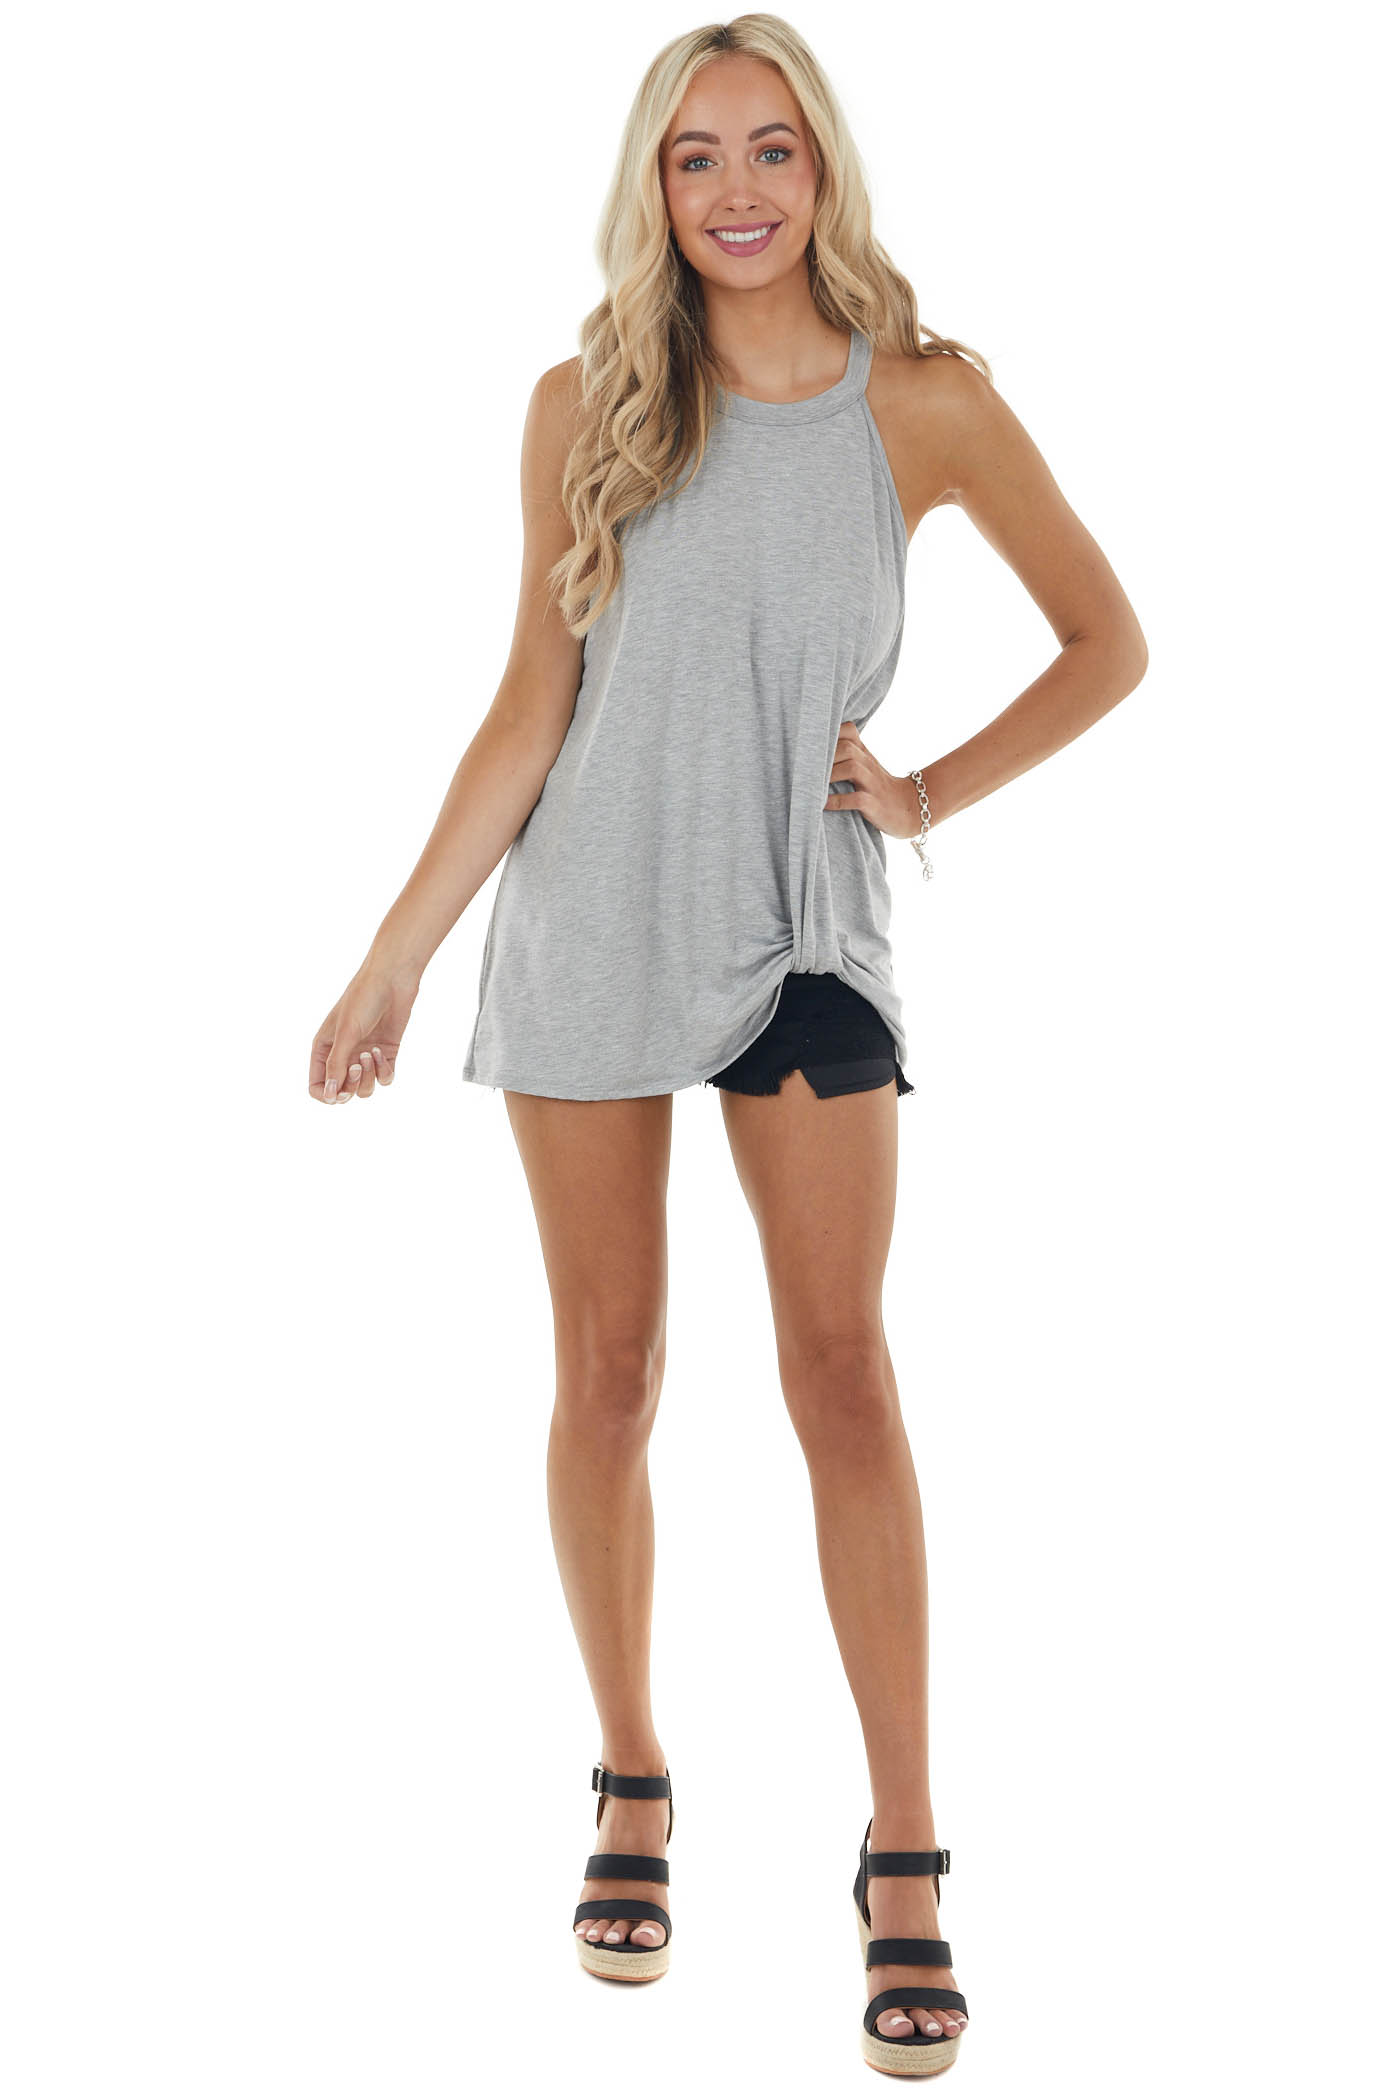 Heather Grey Front Twist Stretchy Knit Top with Halter Neck